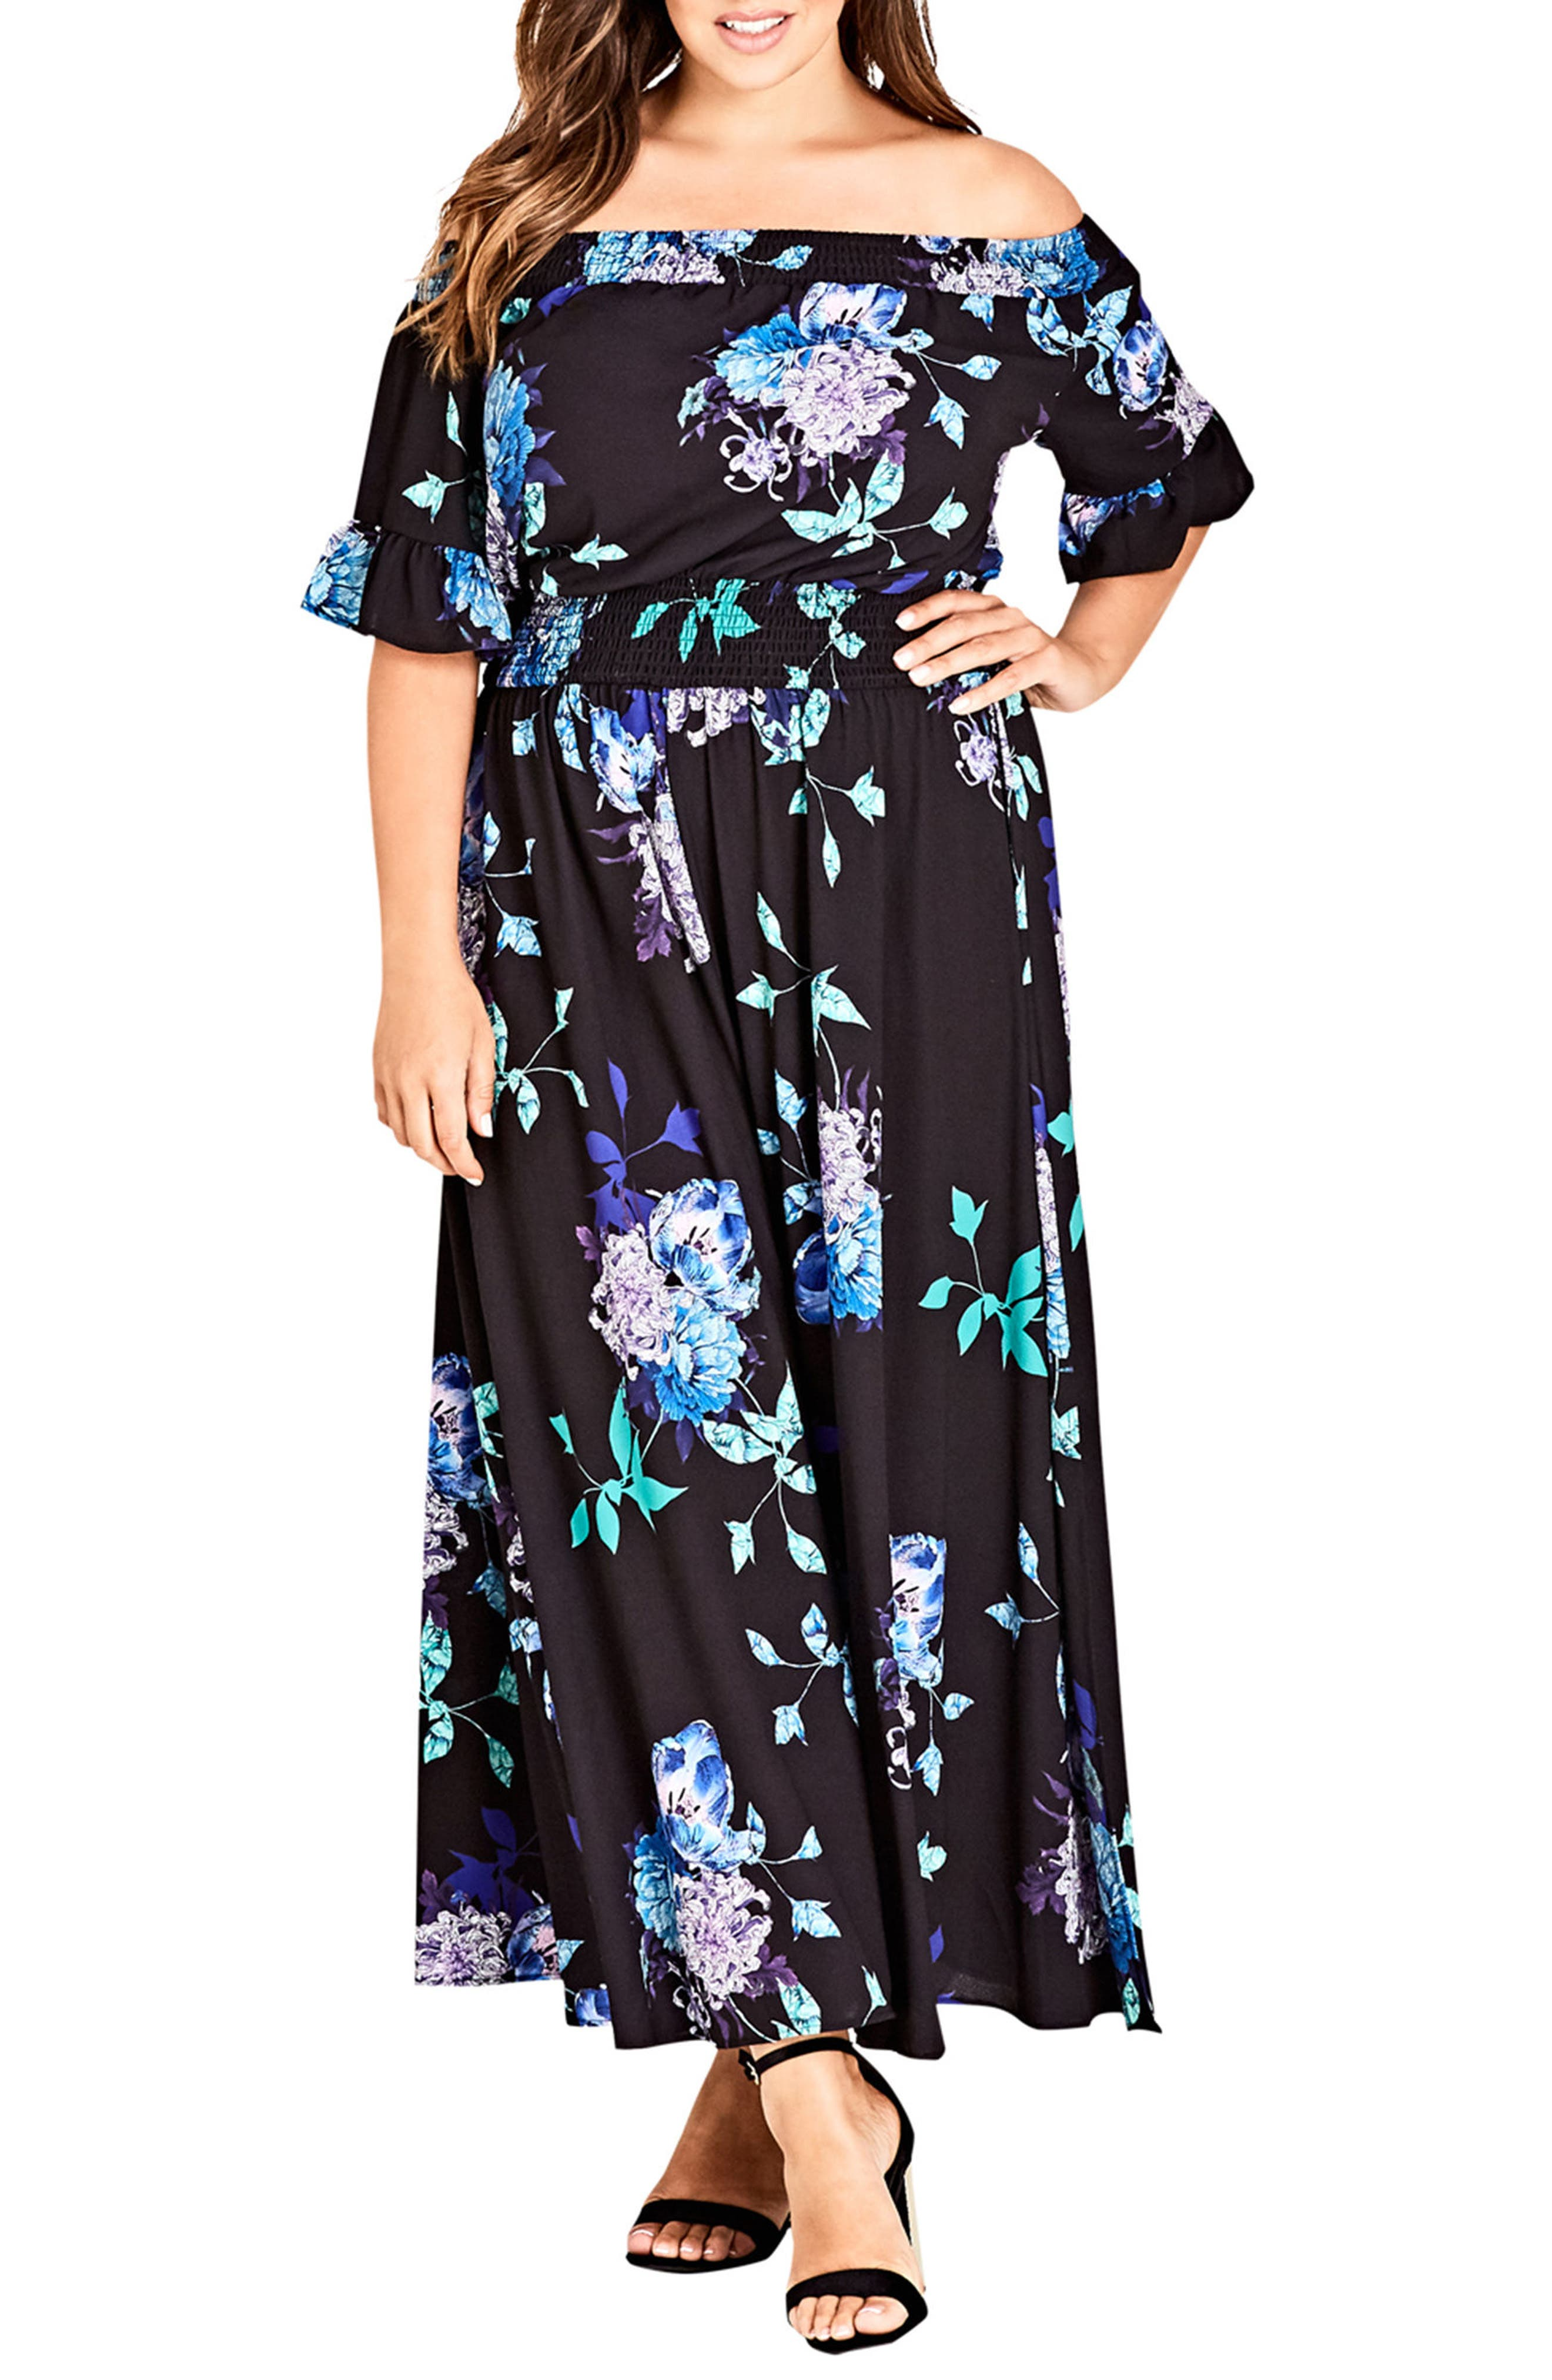 Suzu Floral Maxi Off the Shoulder Dress,                             Main thumbnail 1, color,                             SUZU FLORAL